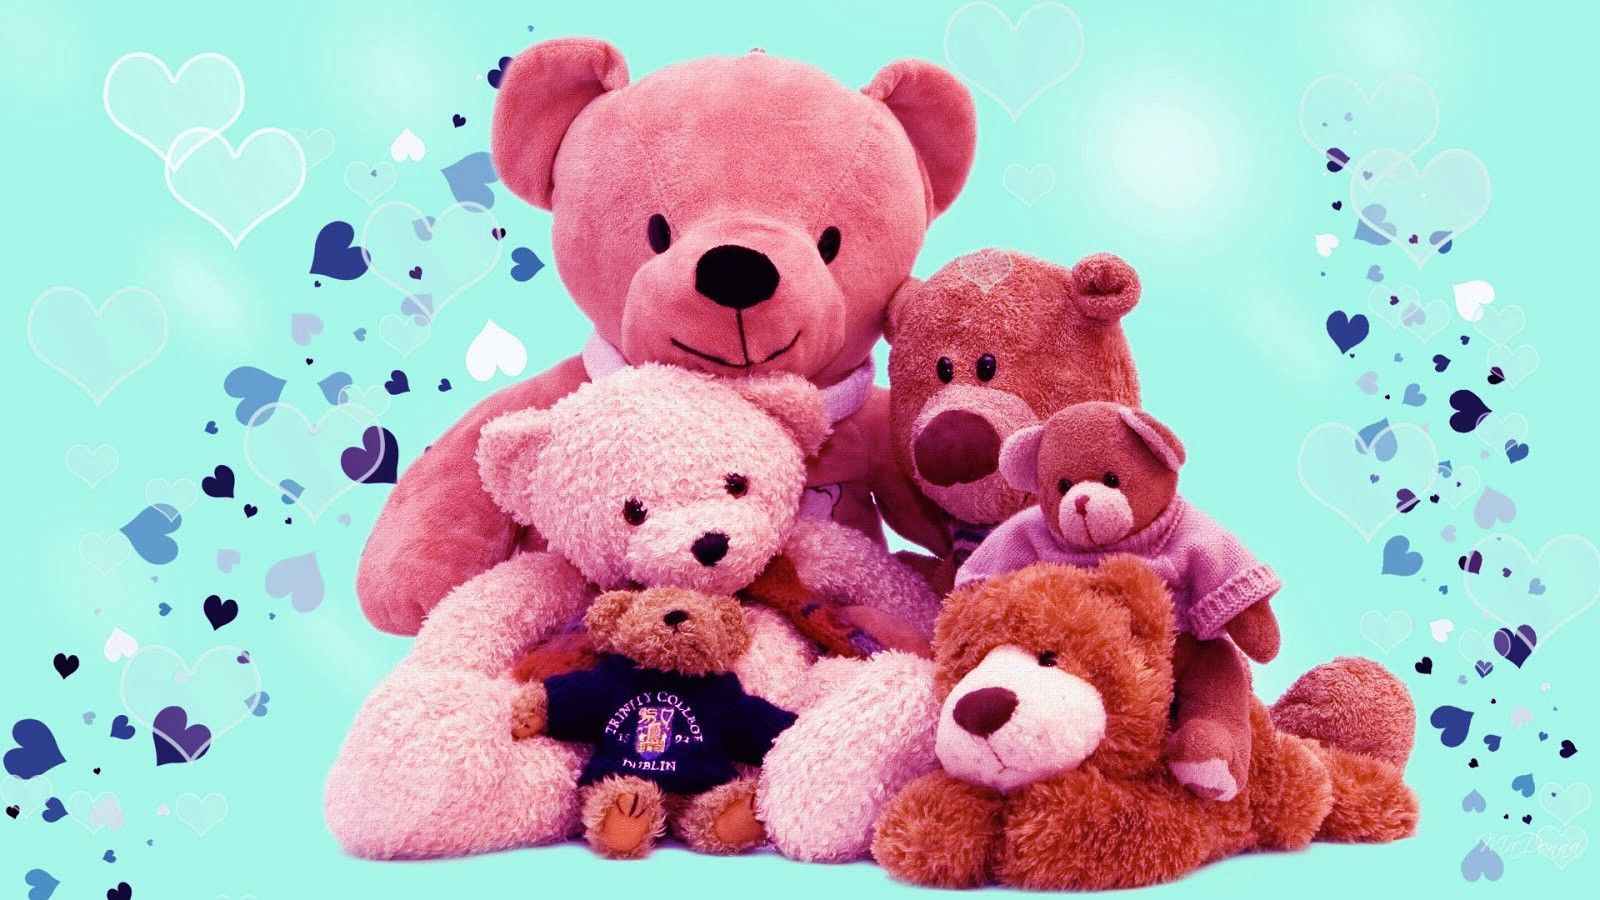 Leave It Once It Ll Will Be Left Forever Get It Once It Ll Be Yours Forever It S Nothing But Love Love O Teddy Day Wallpapers Teddy Bear Wallpaper Teddy Day